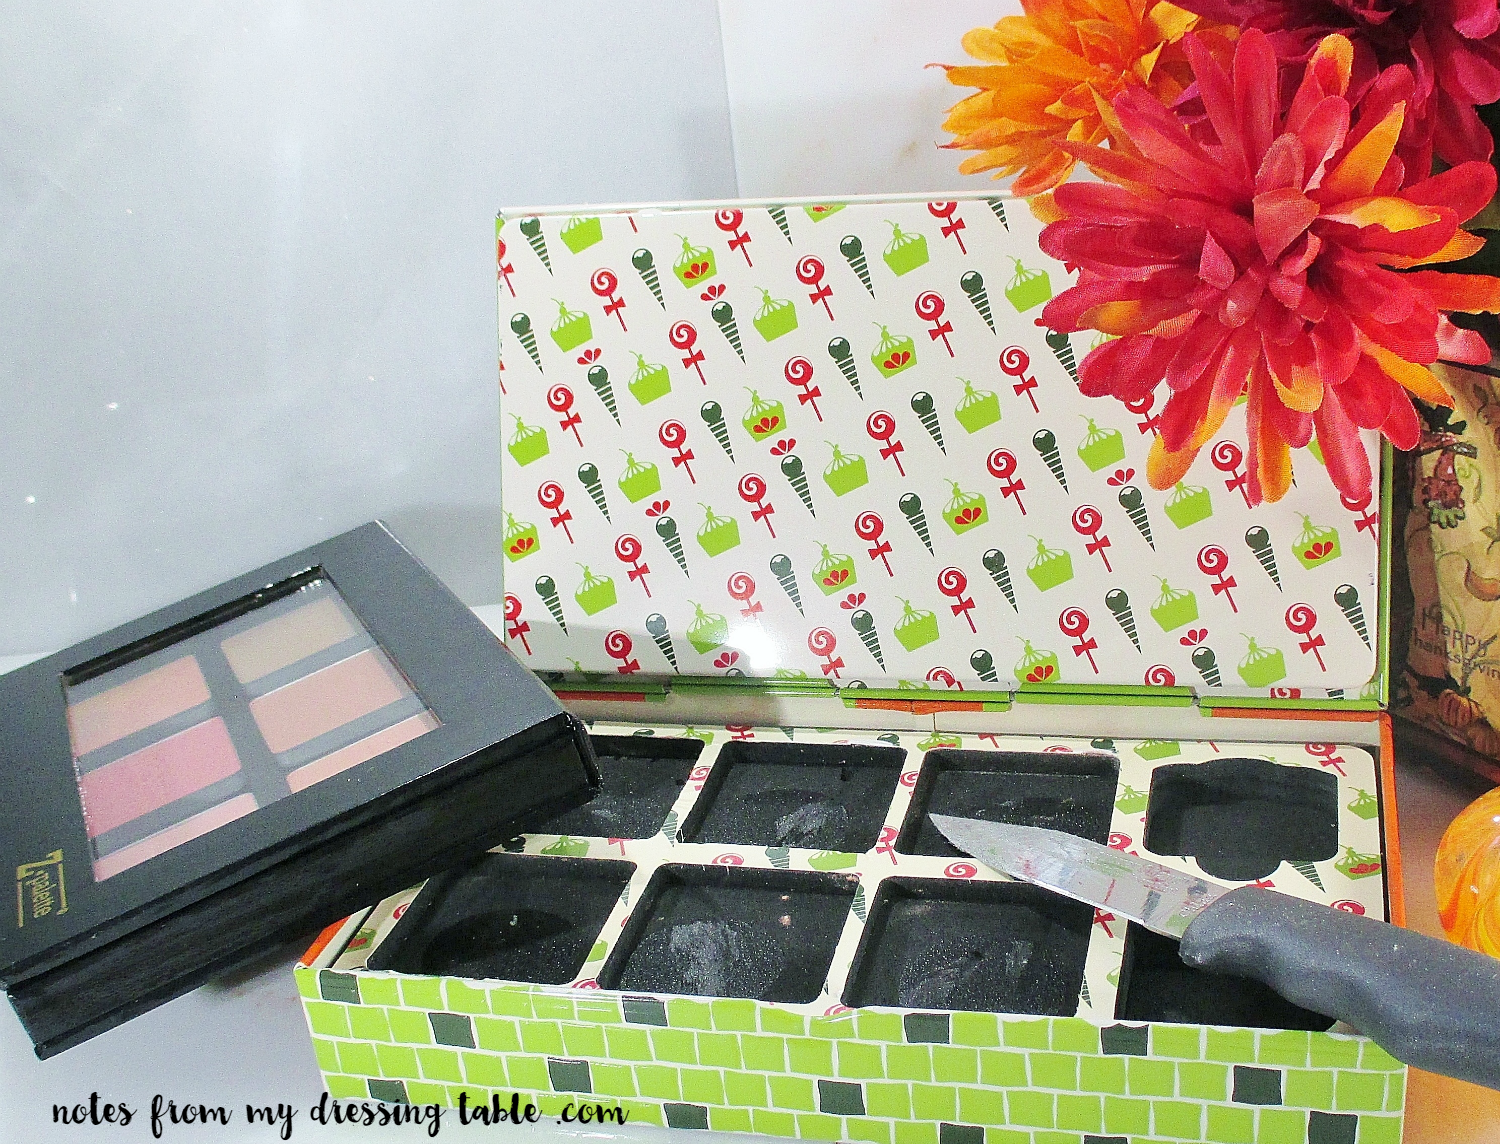 Depot Bulky Older Holiday Palettes Into Sleek Z Palettes! notesfrommydressingtable.com